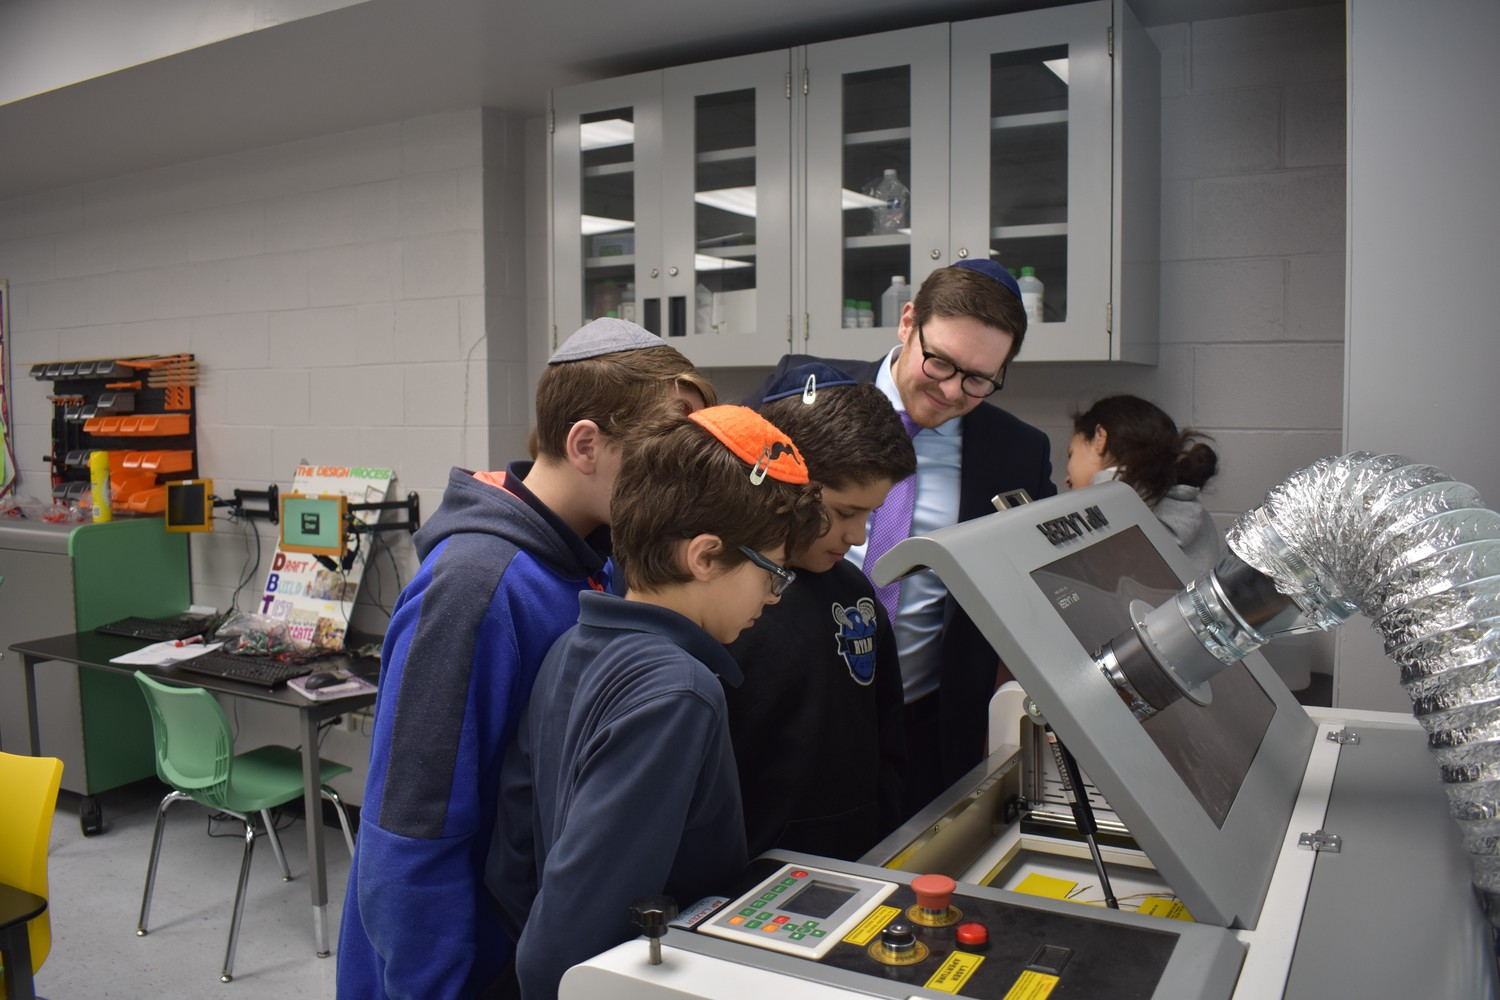 Middle School Principal Josh Gold and students, from left, Benny Krysman, Tommy Nandel and Corey Spitzer checked out the STEM lab's laser cutter.